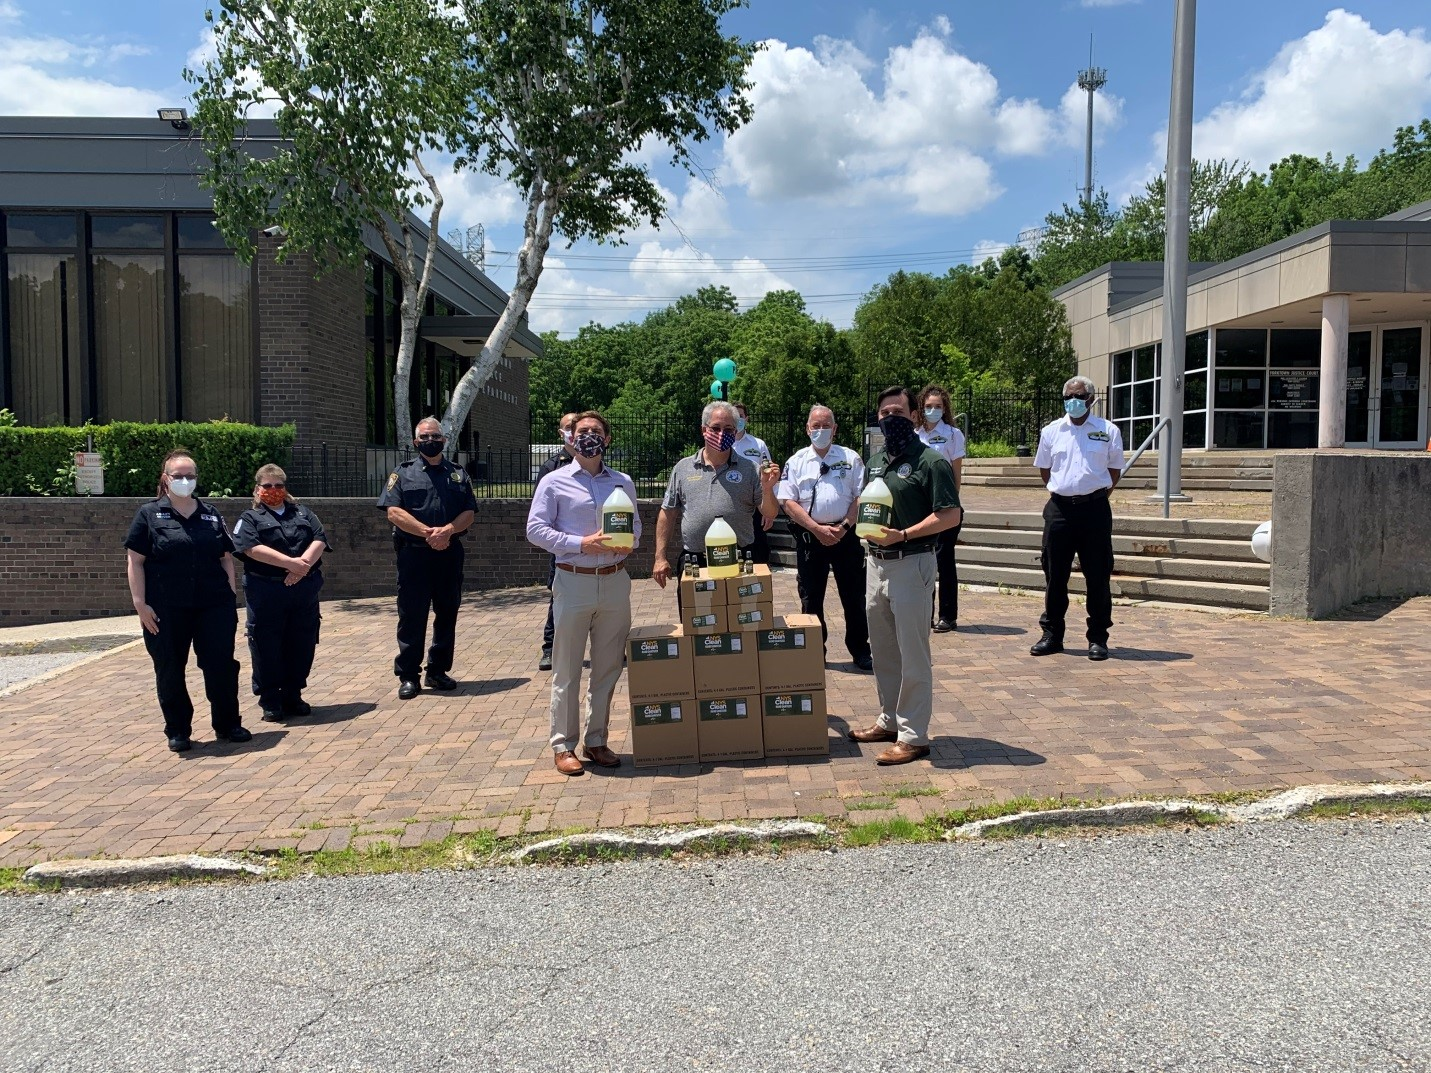 Assemblyman Kevin Byrne (R,C,Ref-Mahopac) was joined by Yorktown Supervisor Matt Slater and Yorktown Councilman Ed Lachterman in providing hand sanitizer to first responders in Yorktown on Friday, June 19, 2020.